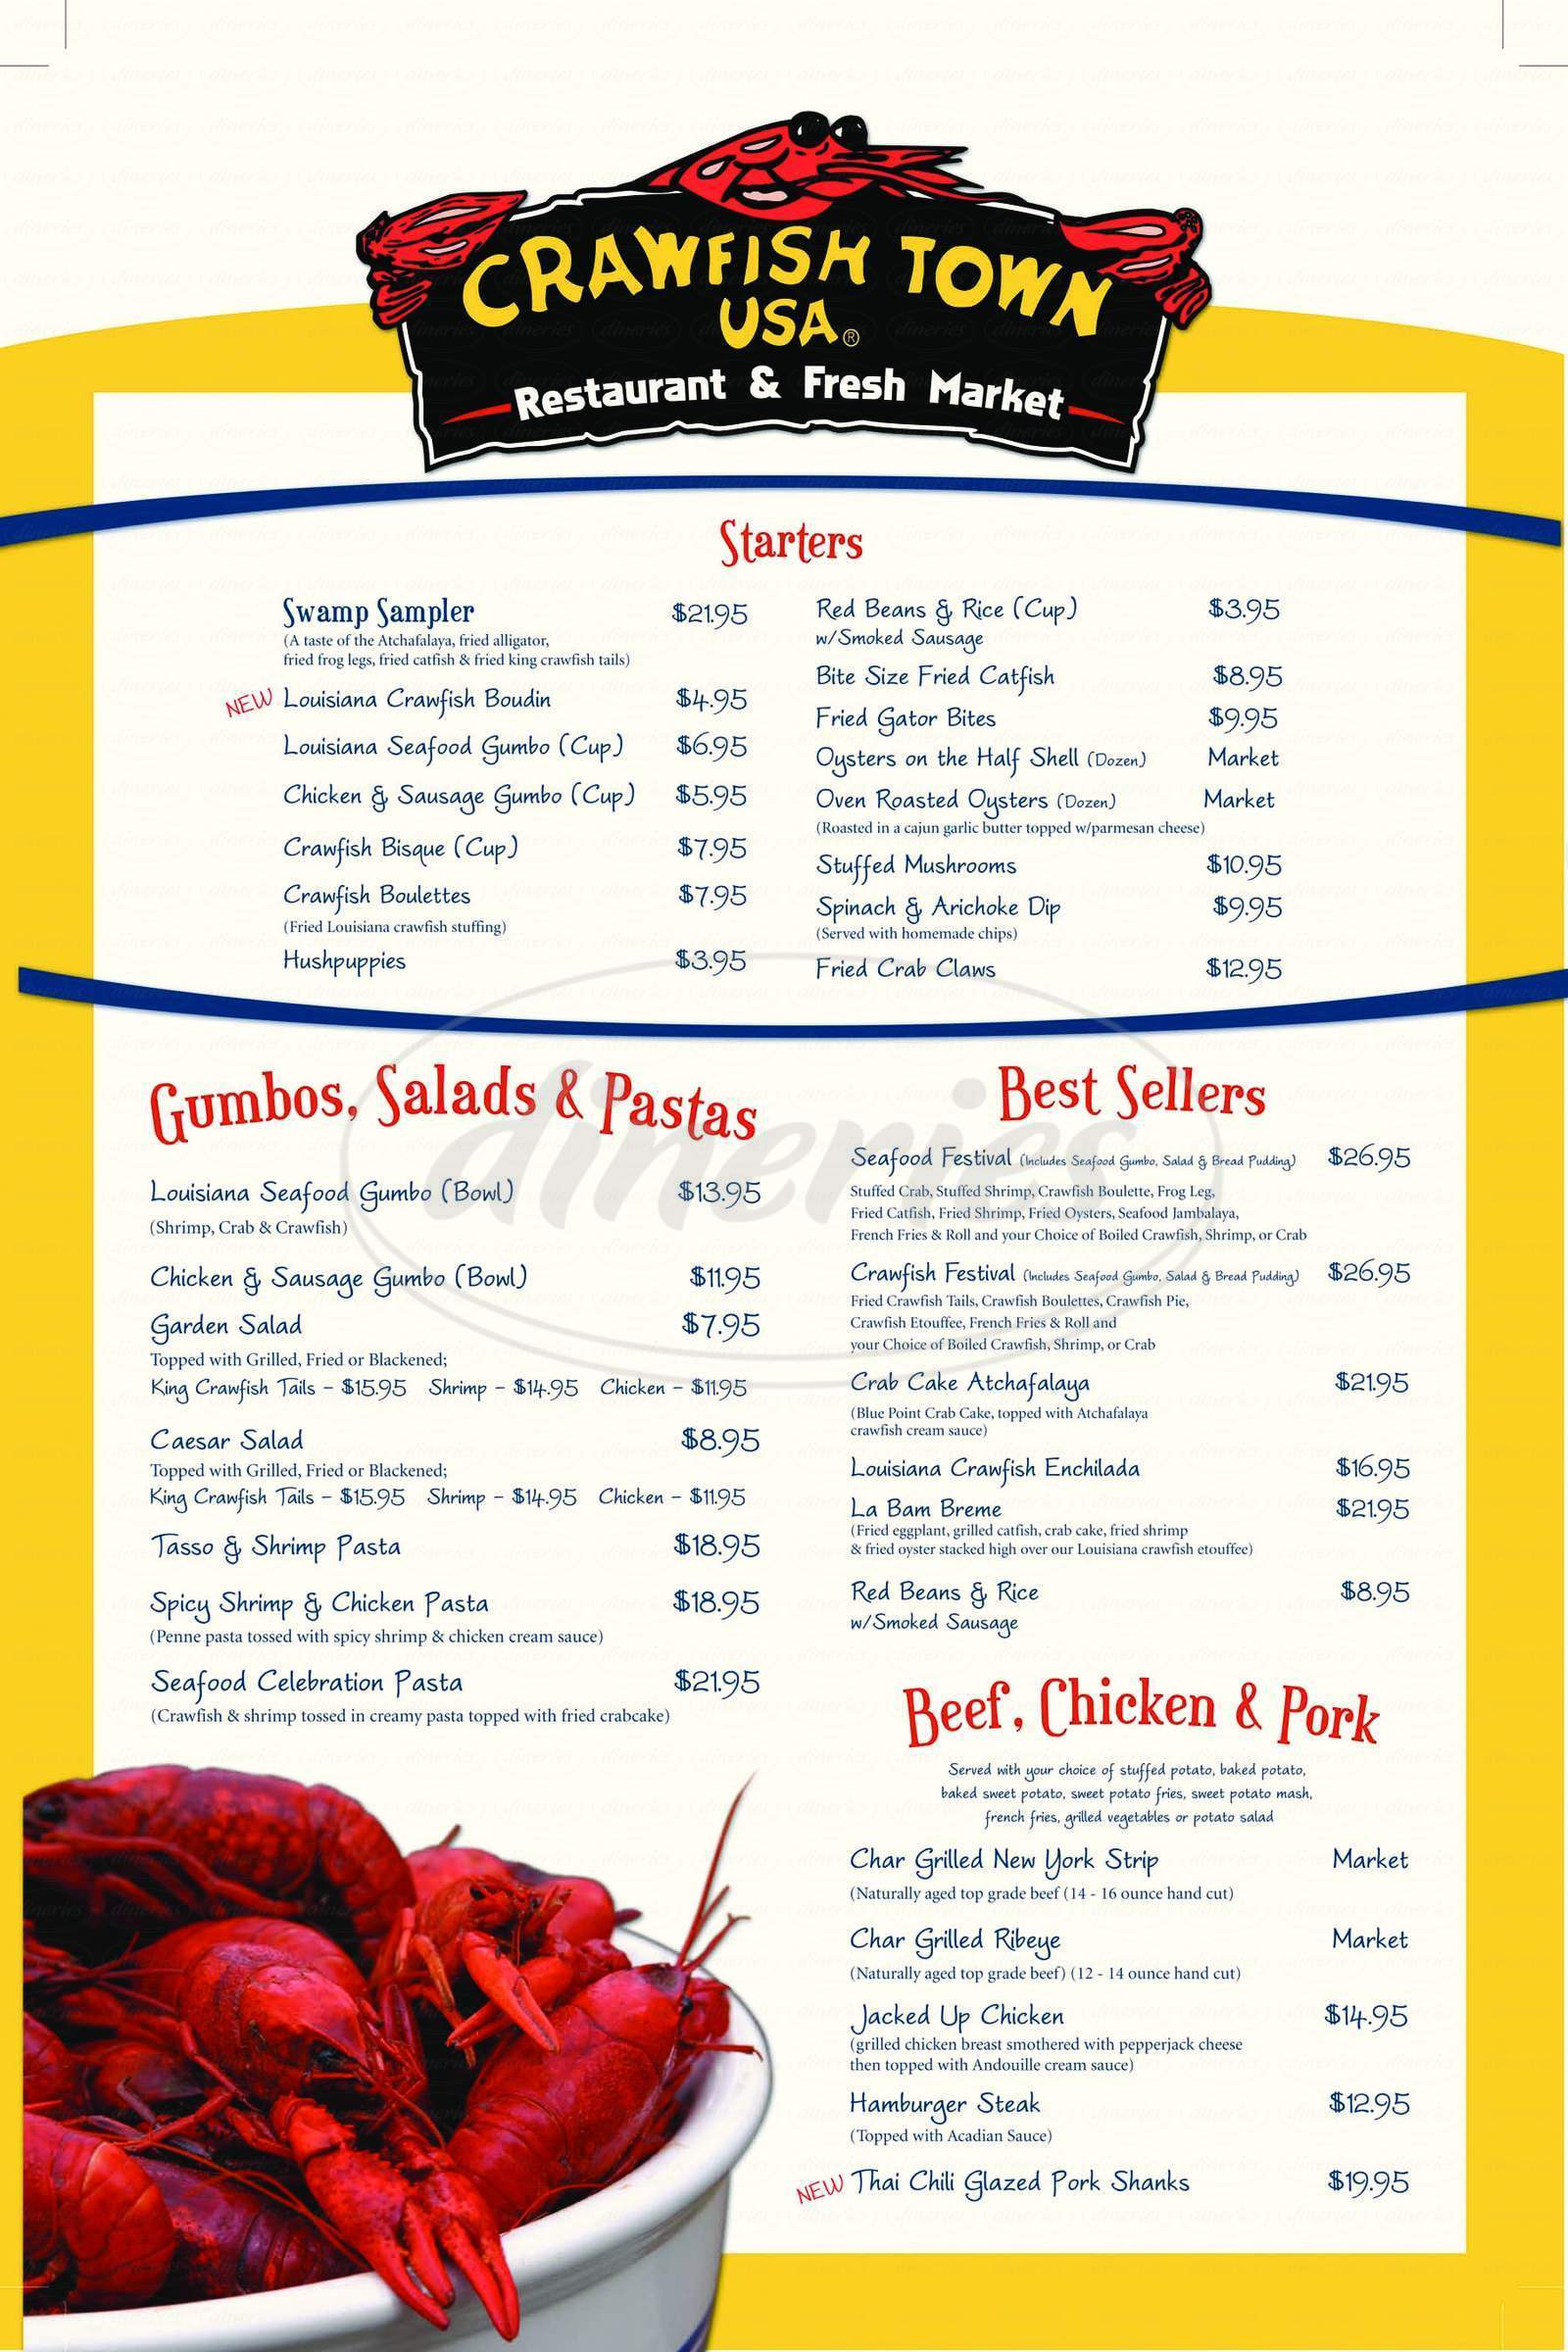 menu for Crawfish Town USA